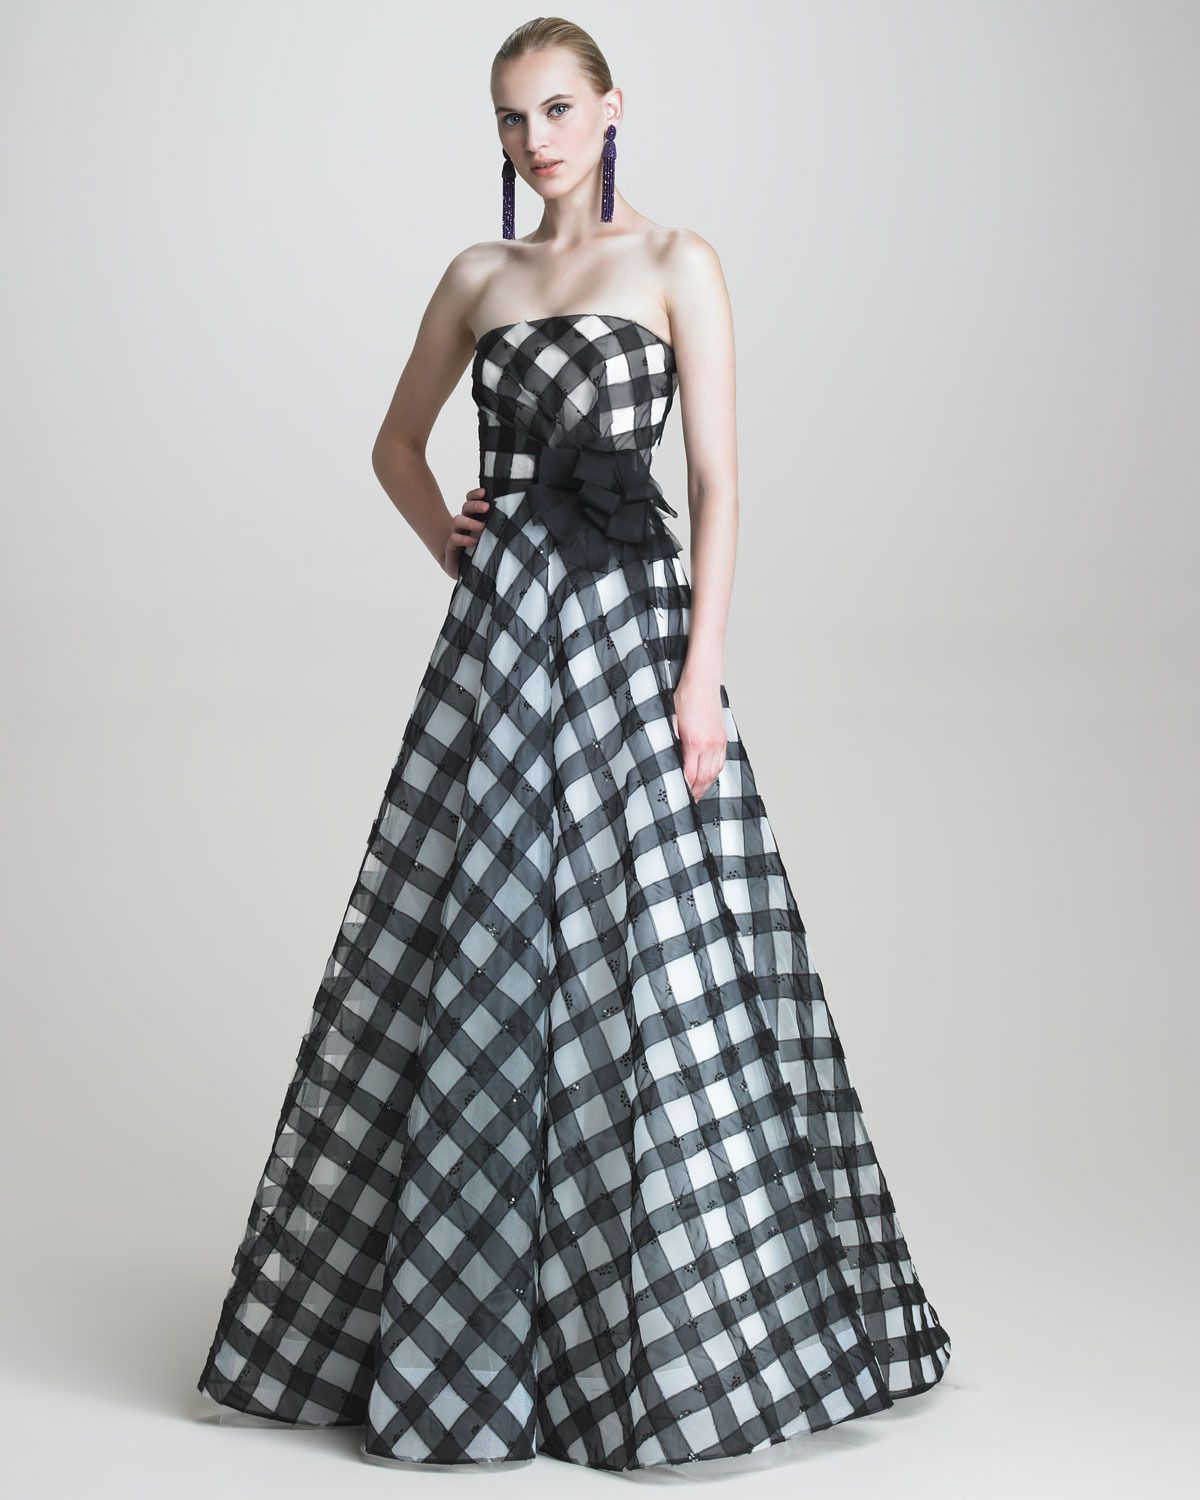 Strapless gingham gown outfitaccessories pinterest gingham strapless gingham gown black evening dressesneiman marcusoscarsbridesmaid ombrellifo Image collections